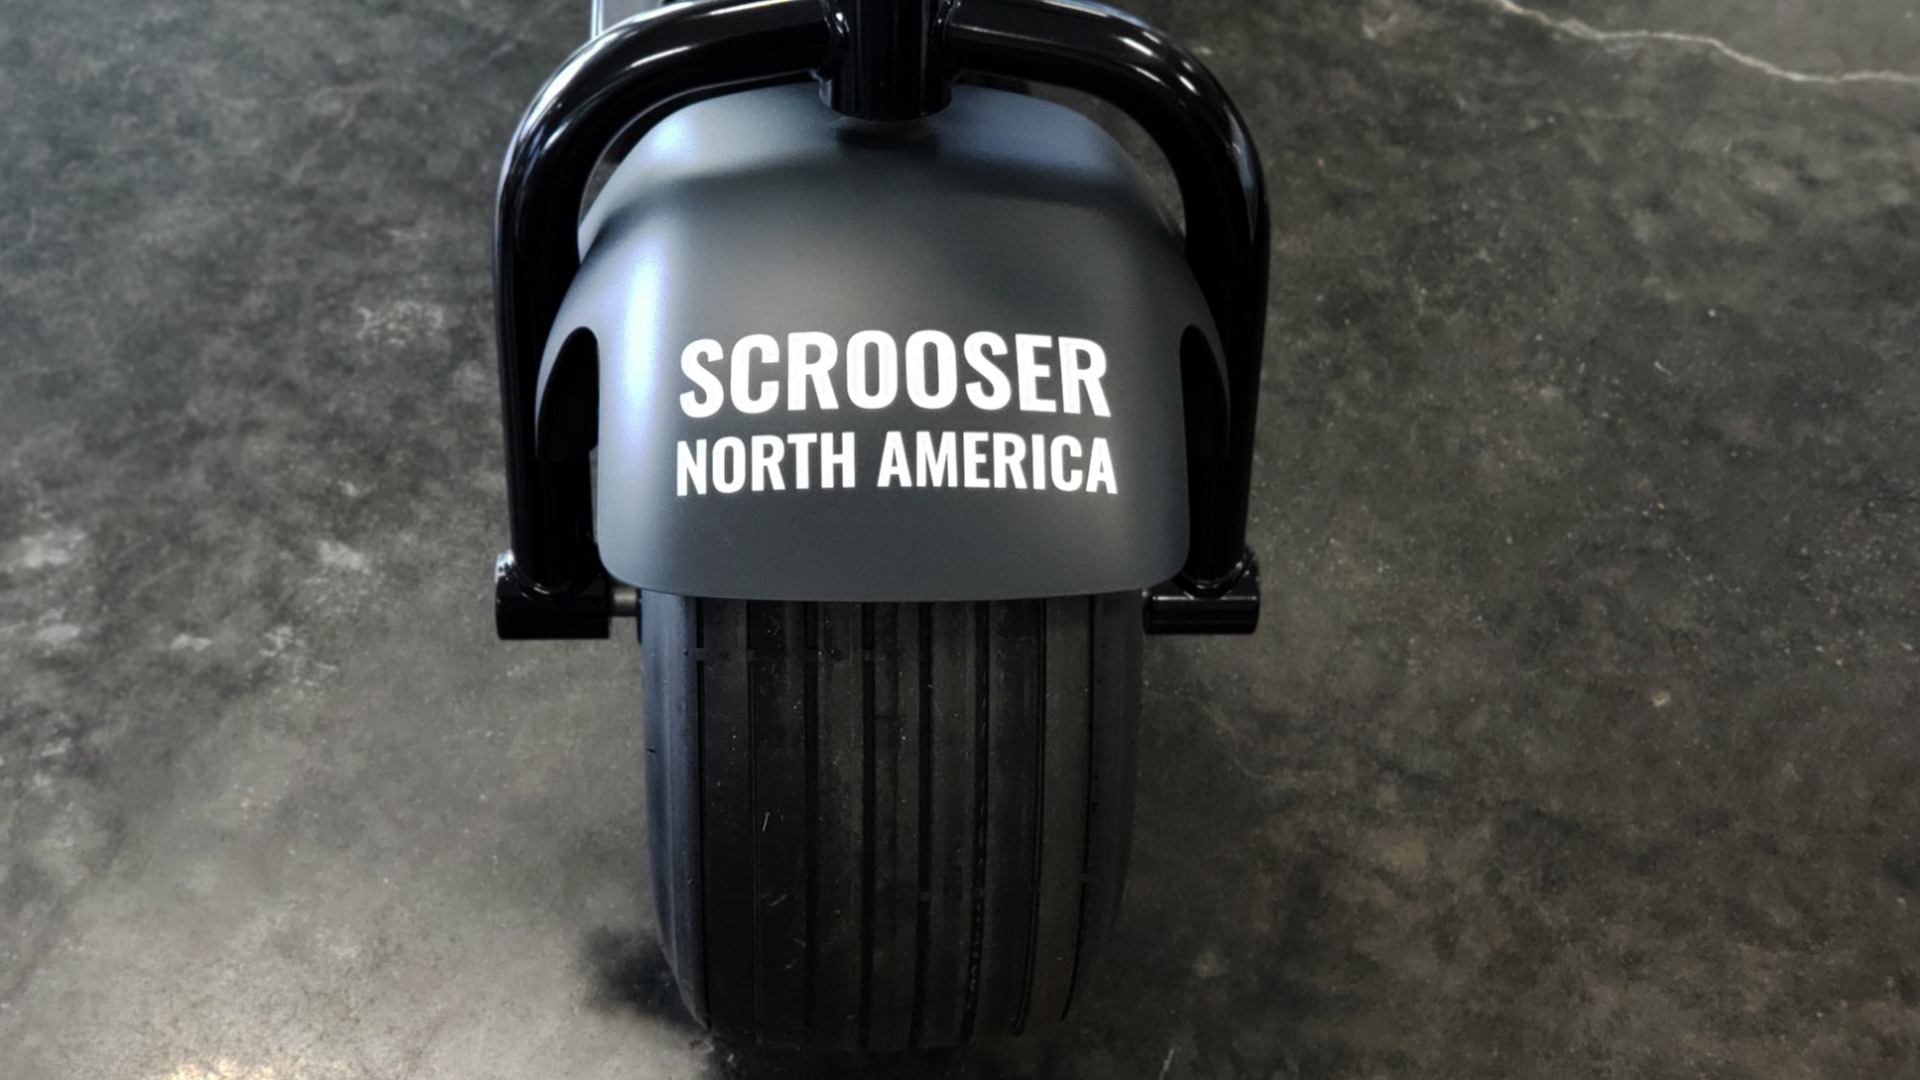 Used 2018 SCROOSER ELECTRIC SCOOTER SELF BALANCED / PITCH BLACK / 15.5 MPH / 34 MI RANGE for sale Sold at Formula Imports in Charlotte NC 28227 3